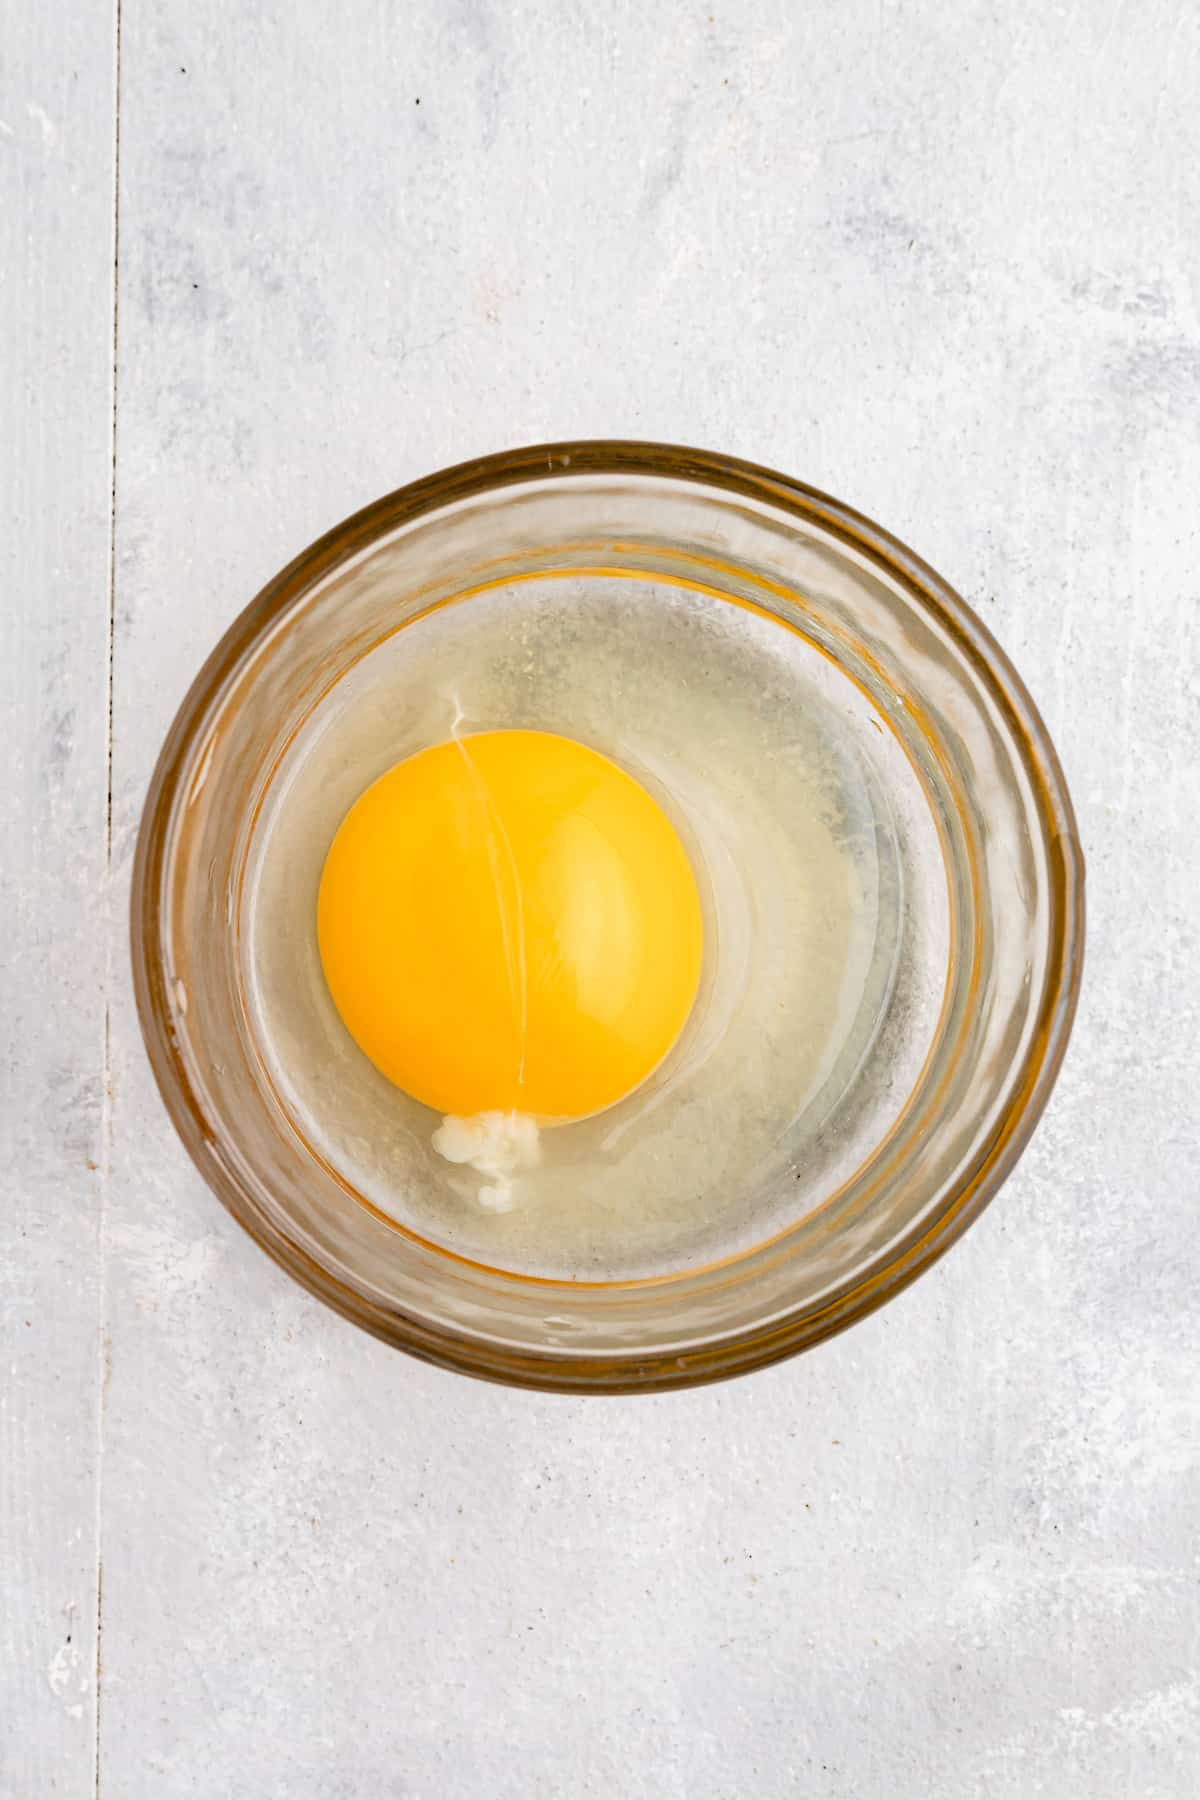 Egg in a small dish